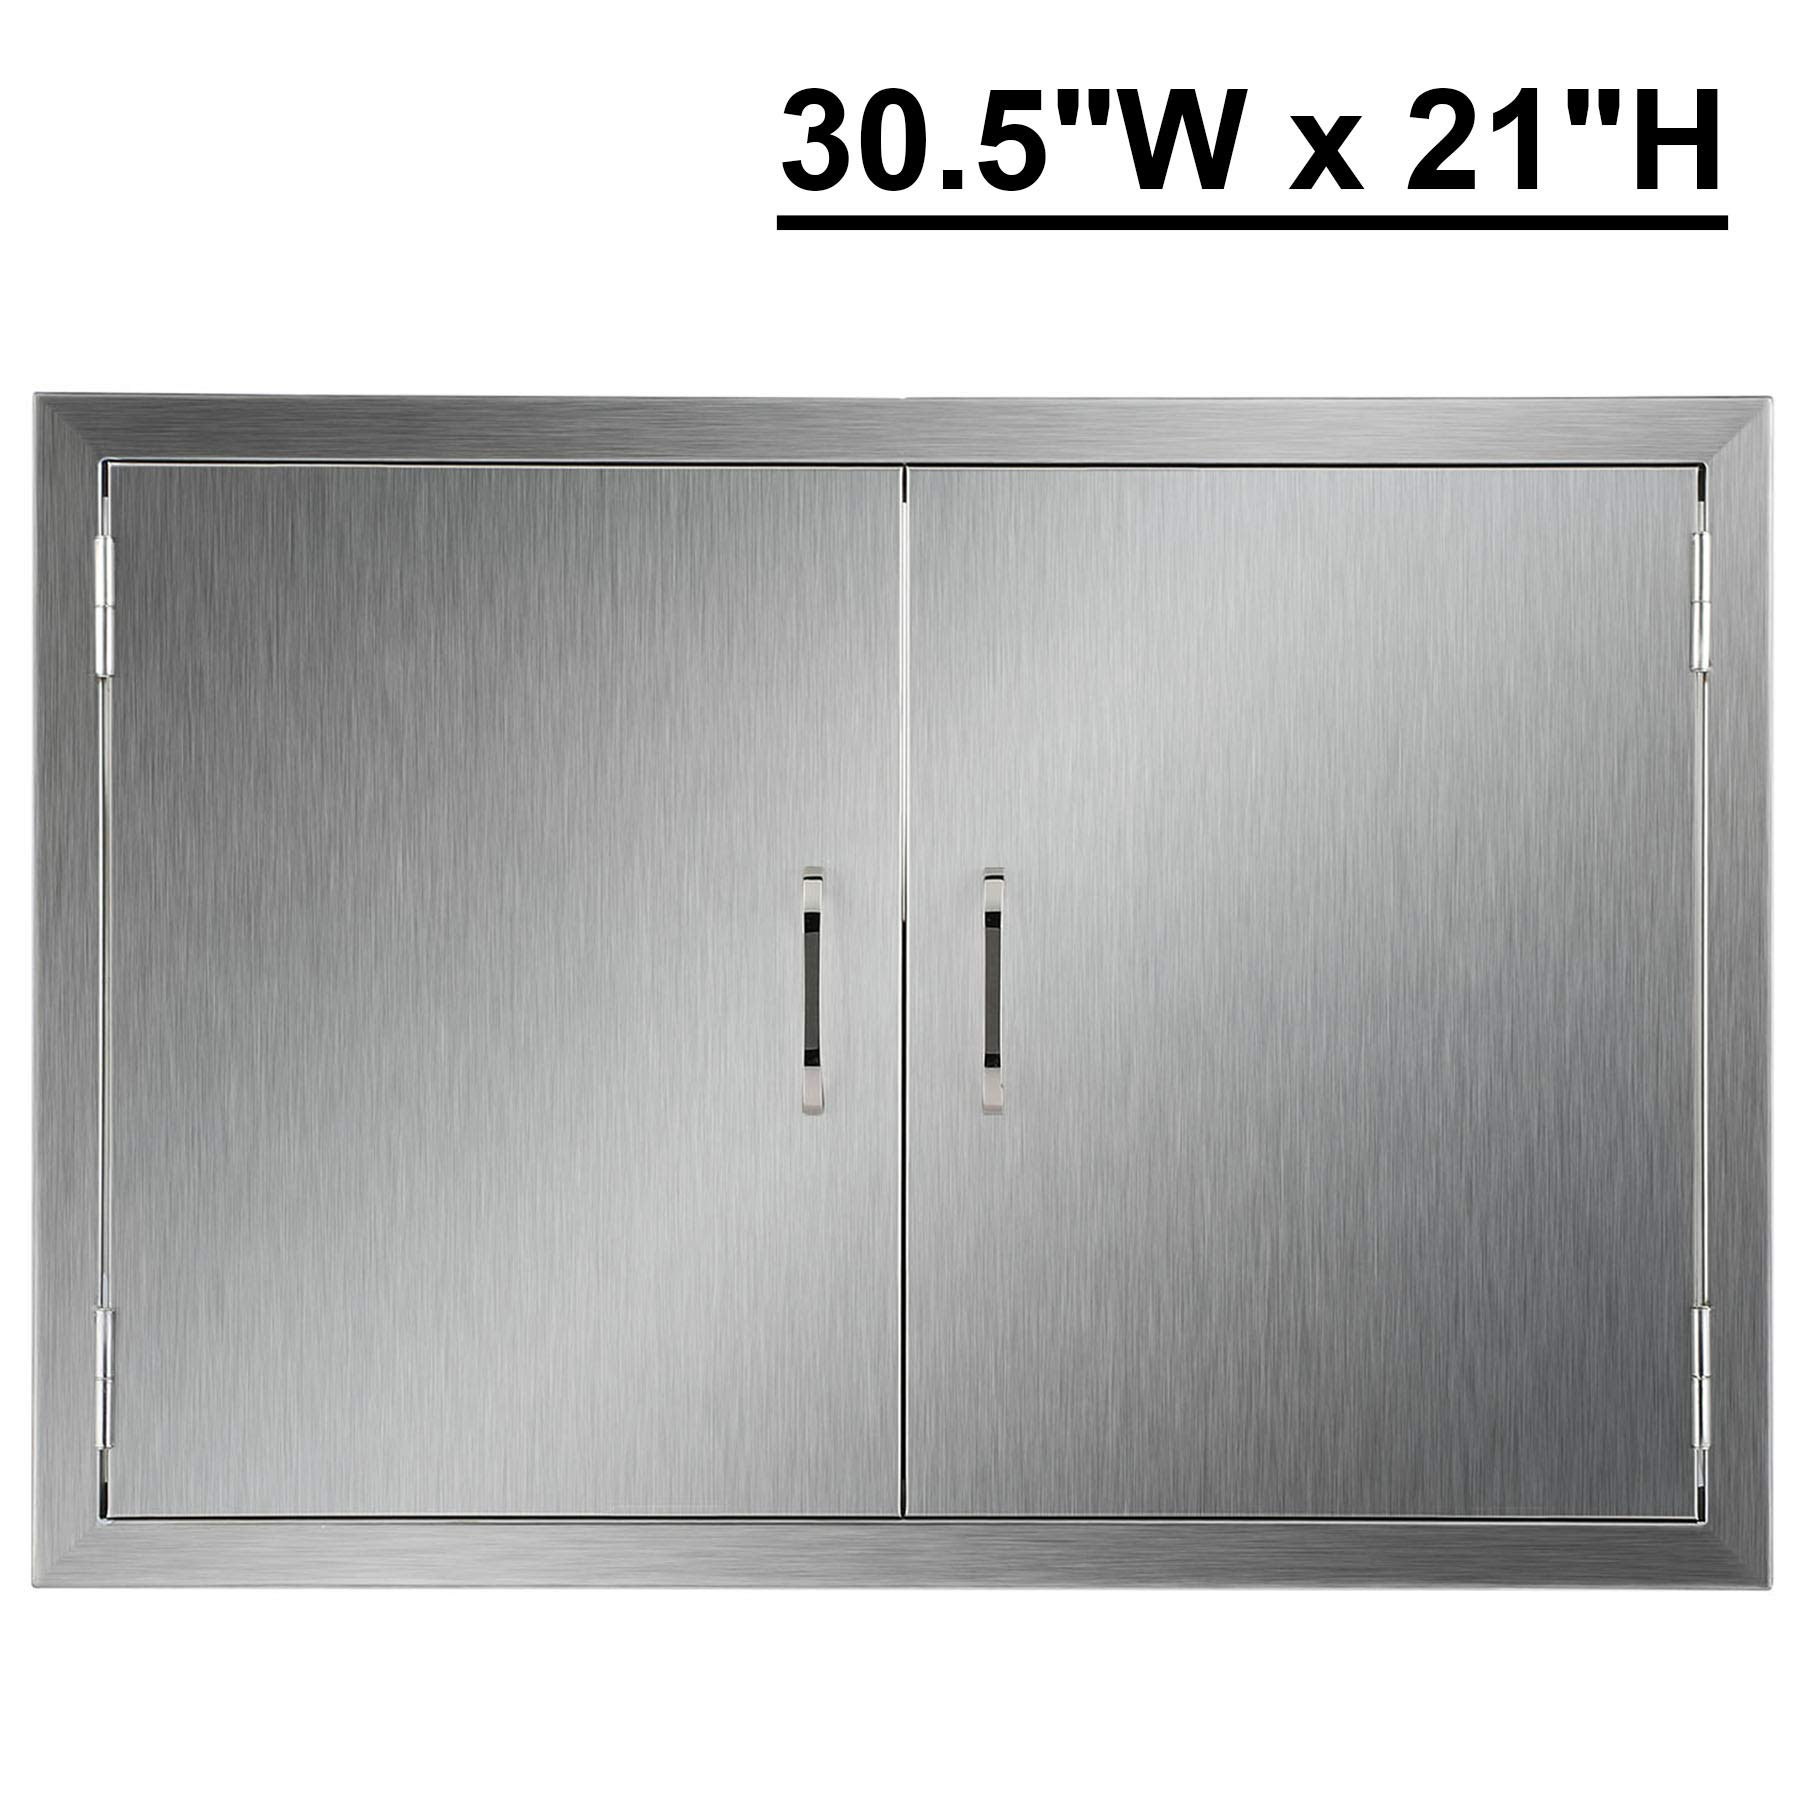 CO-Z Outdoor Kitchen Doors, 304 Brushed Stainless Steel Double BBQ Access Doors for Outdoor Kitchen, Commercial BBQ Island, Grilling Station, Outside Cabinet, Barbeque Grill, Built-in (30.5''W x 21''H)